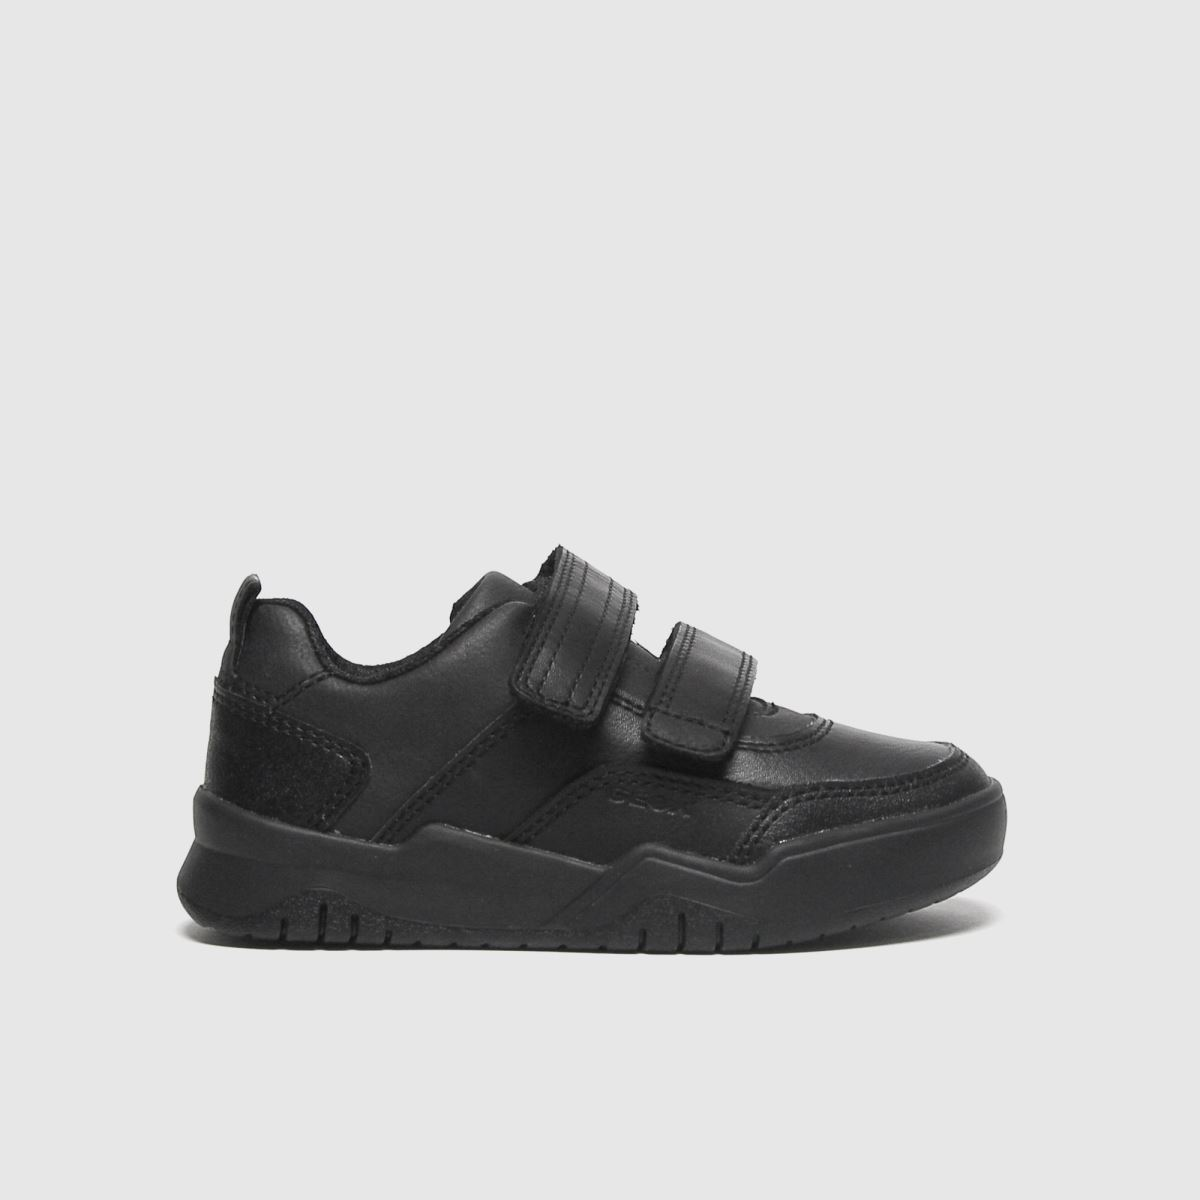 Geox Geox Black Perth Trainers Toddler